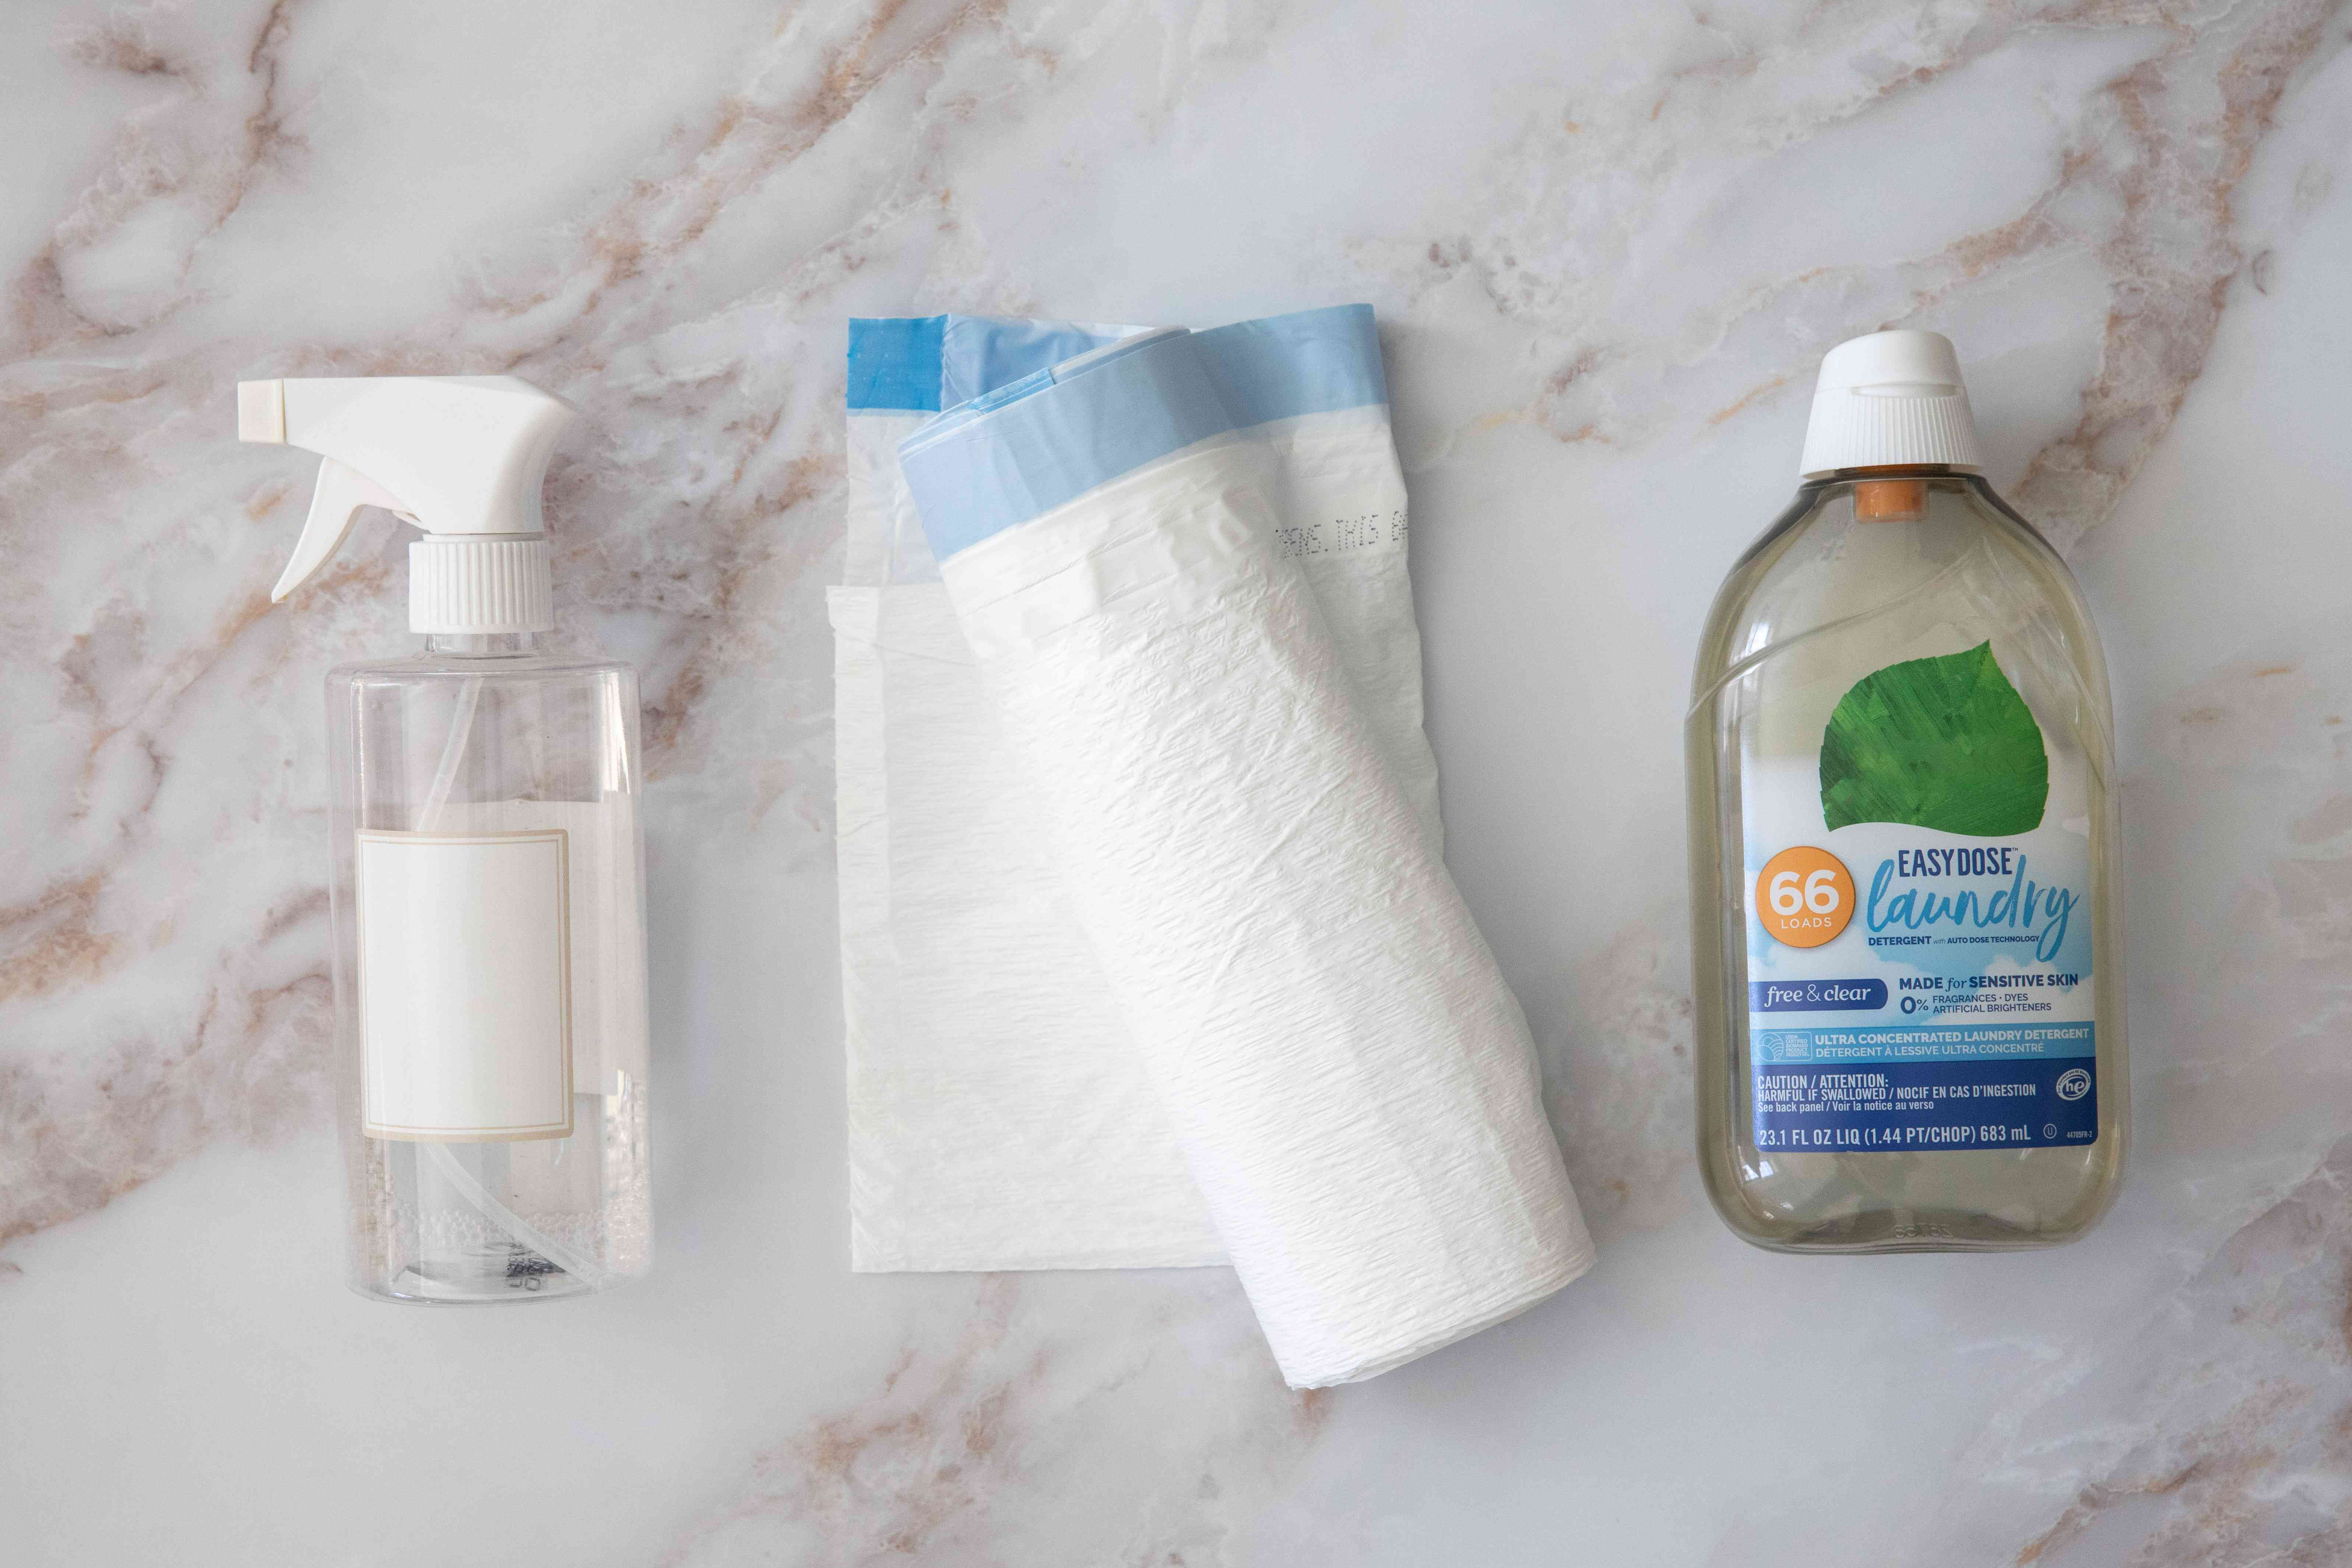 Glass spray bottle next to roll of plastic trash bag and laundry detergent bottle